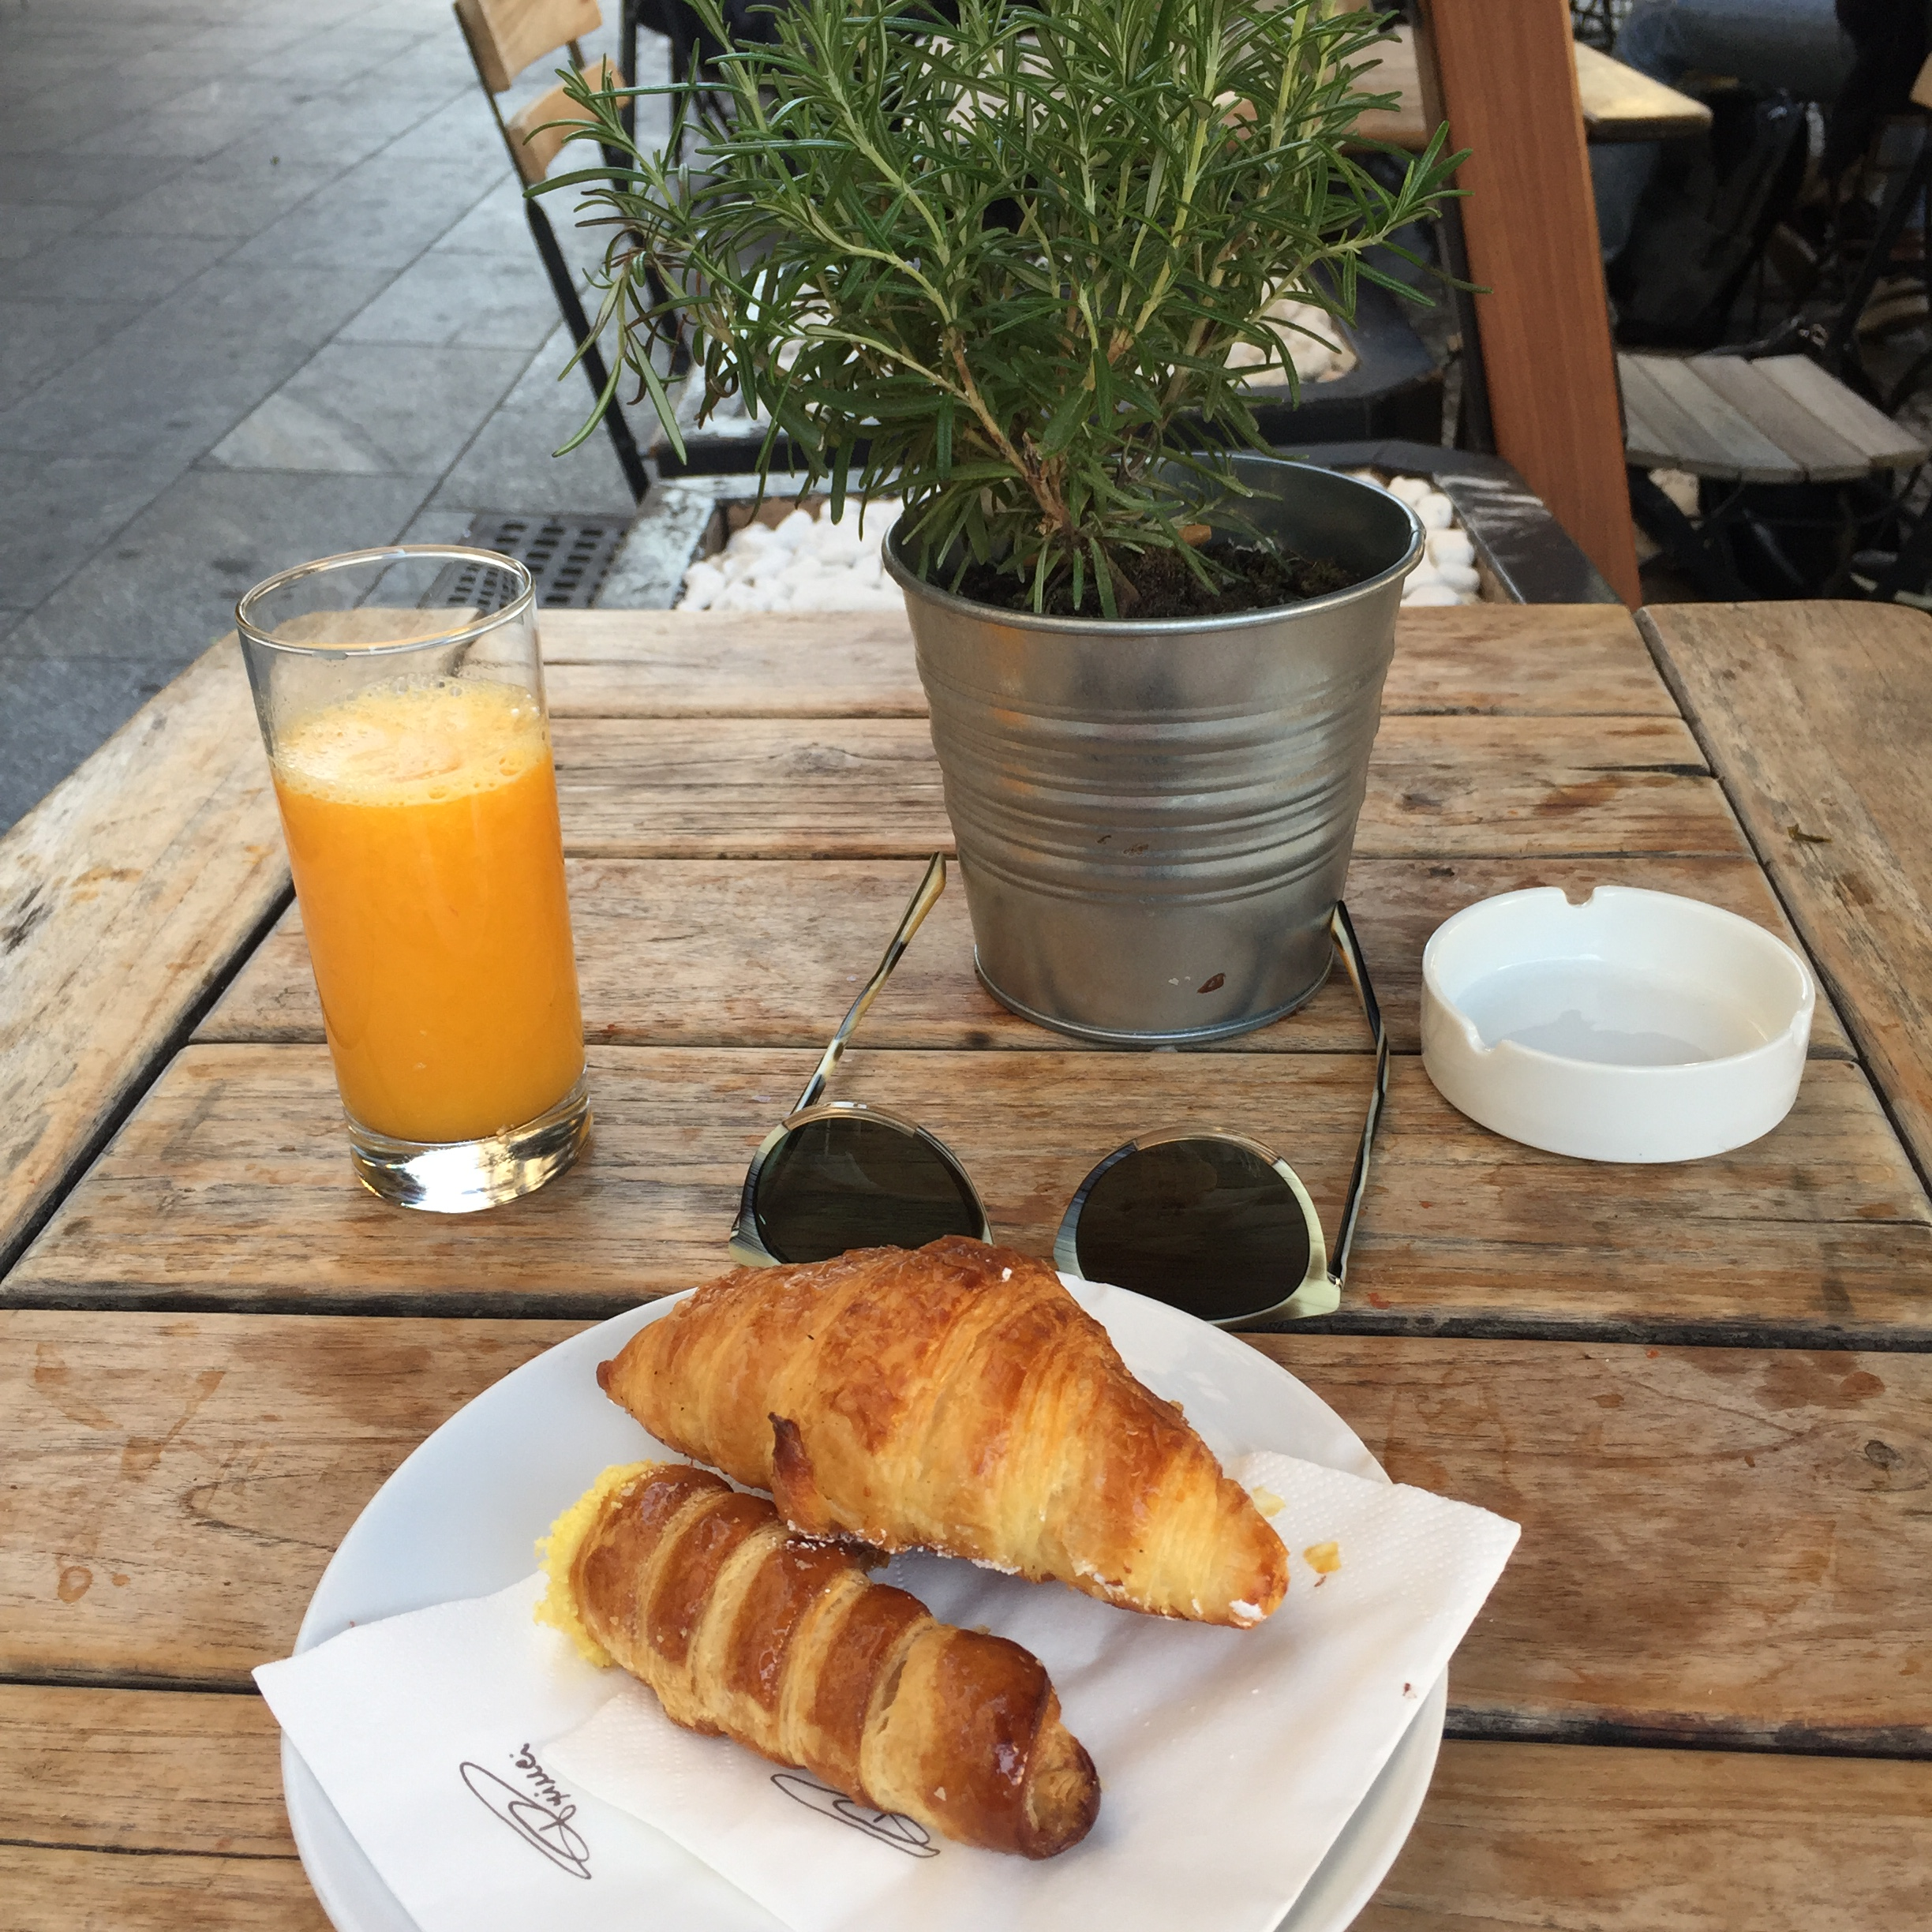 Breakfast all'italiana at Princi